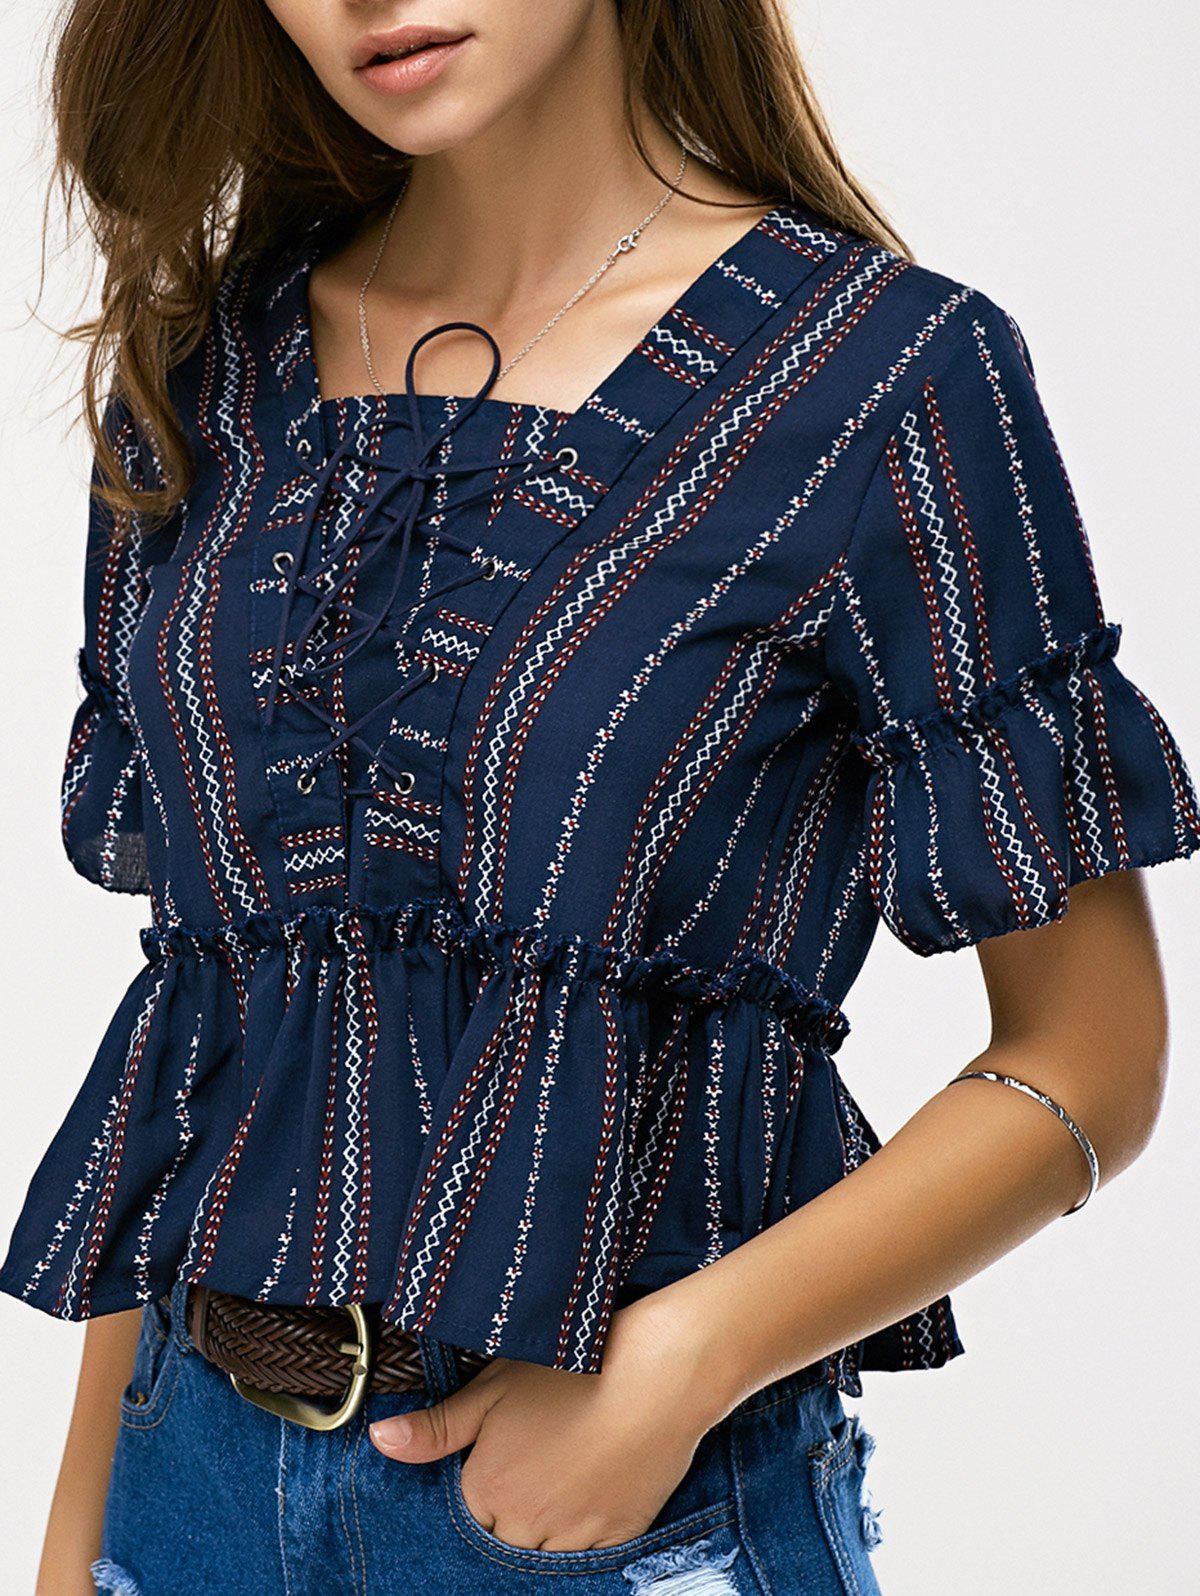 Ethnic Women's Lace-Up Ruffled Top - PURPLISH BLUE ONE SIZE(FIT SIZE XS TO M)